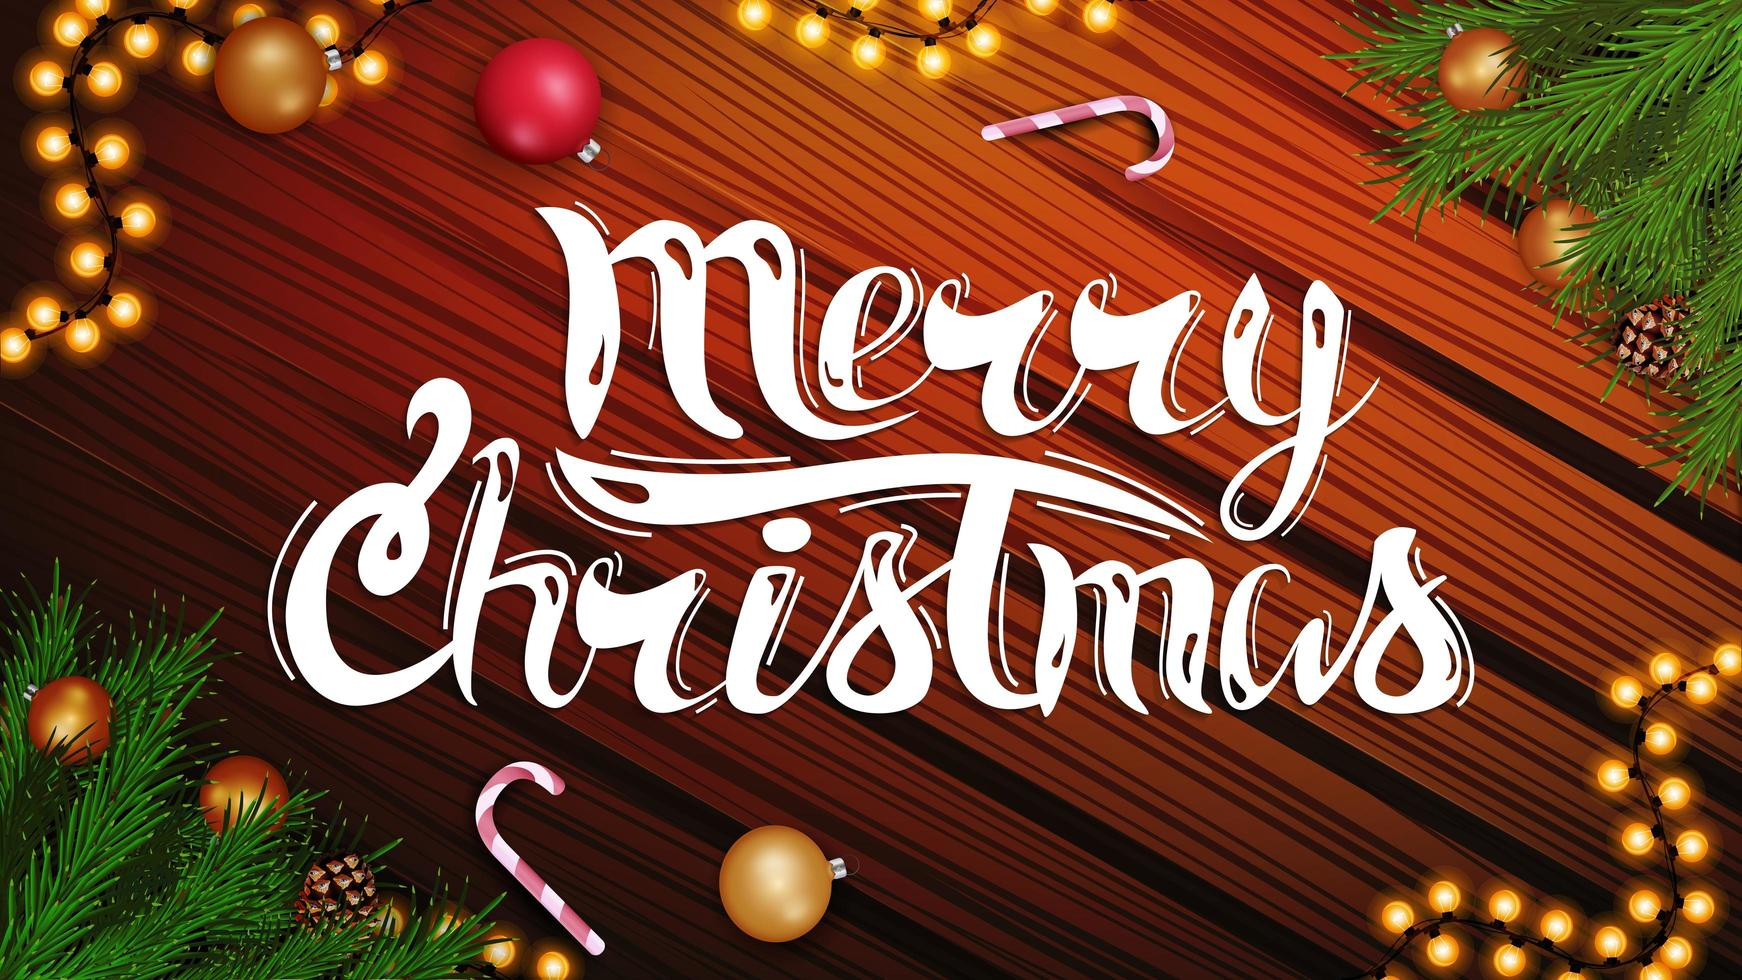 Merry Christmas, beautiful postcard with lettering, garland, Christmas tree branch and candy cane on wooden background vector